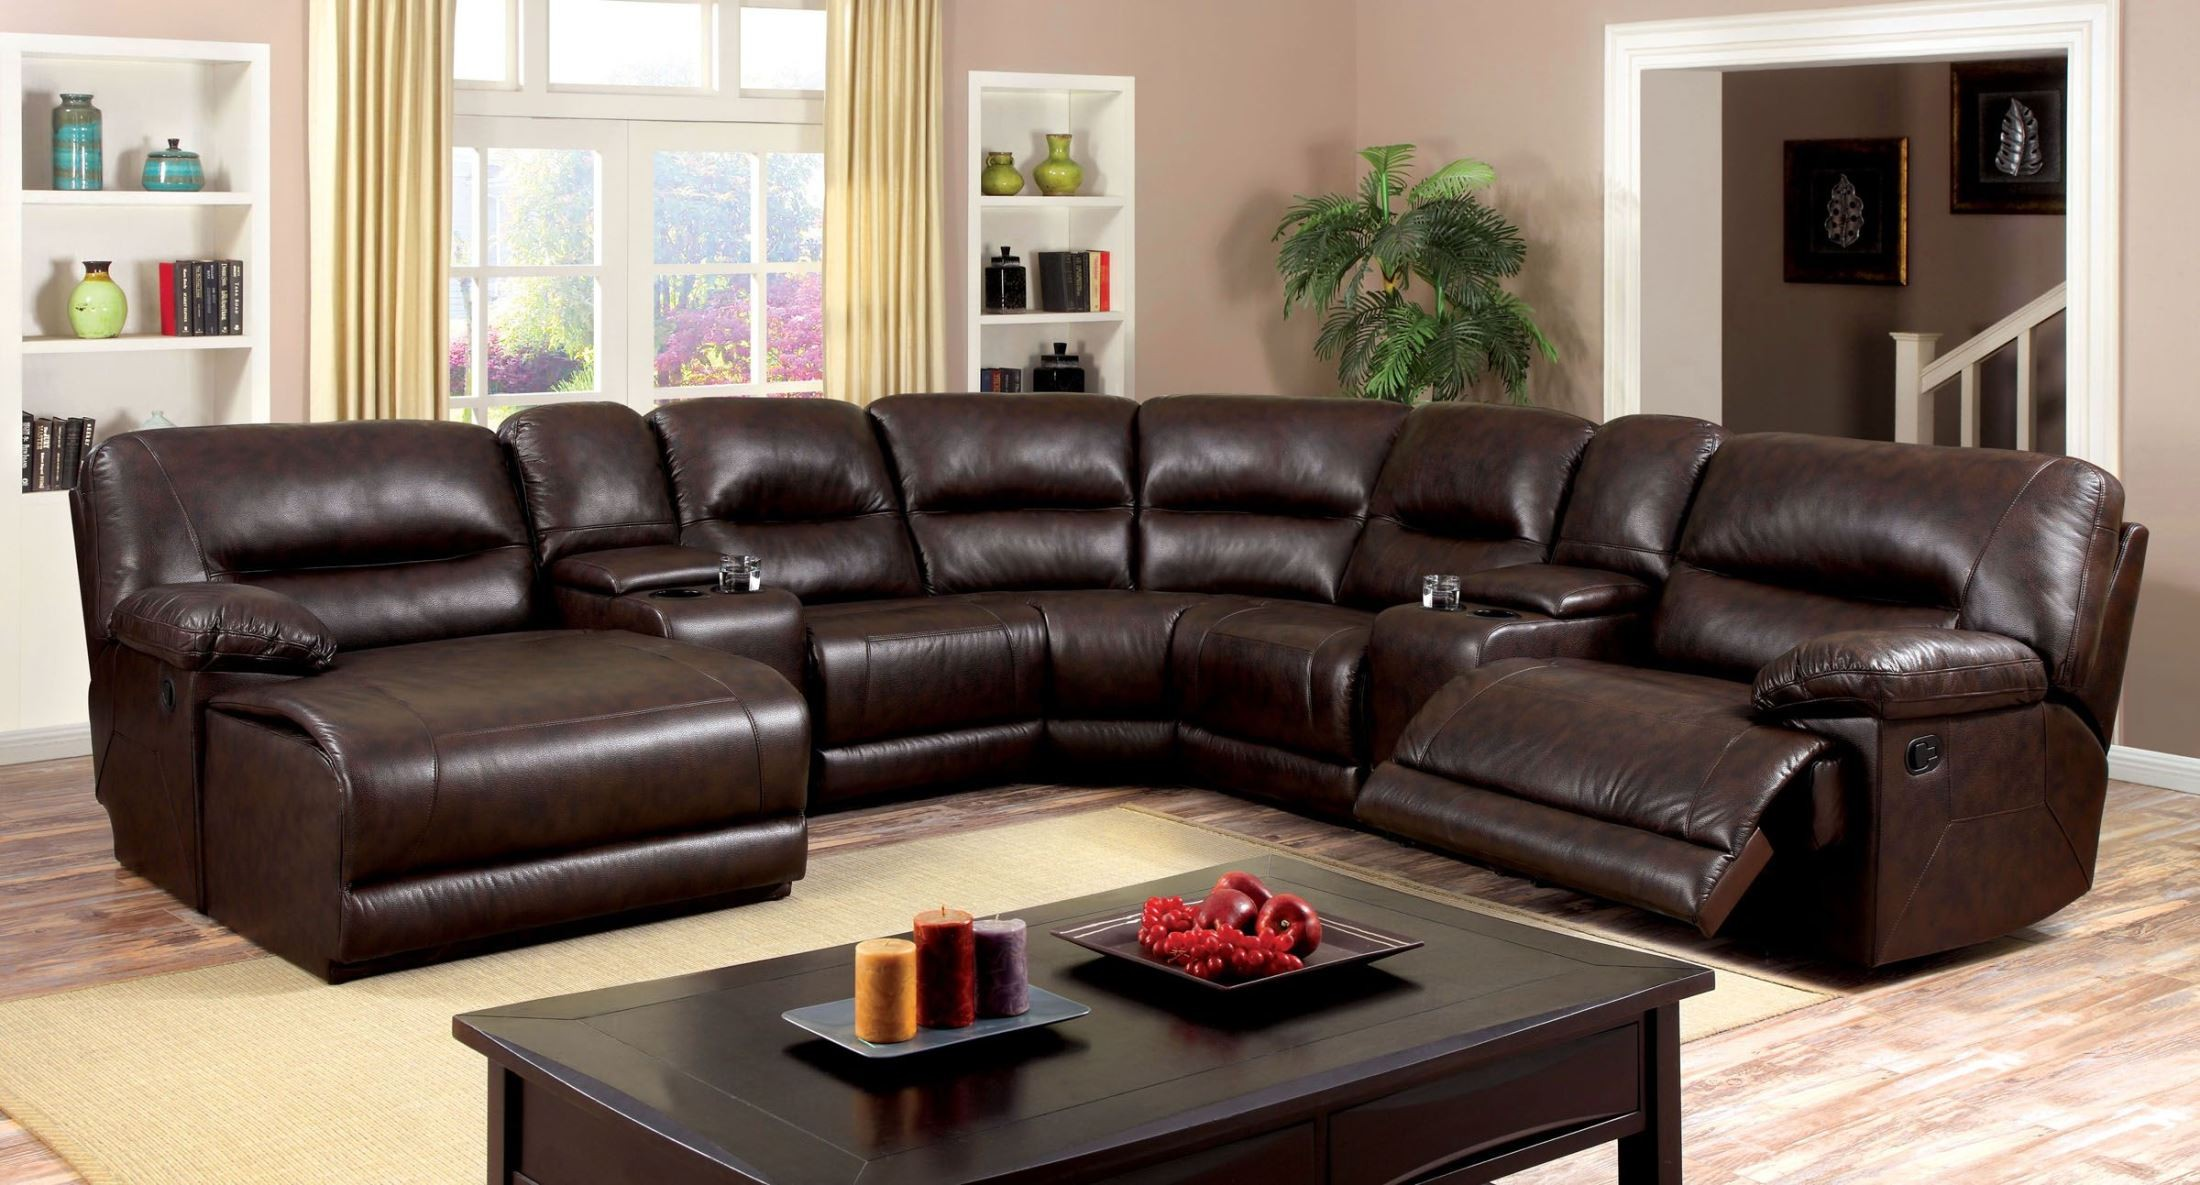 Glasgow 7 Piece 2 Reclining Console Sectional From Furniture Of America Cm6822br Sectional